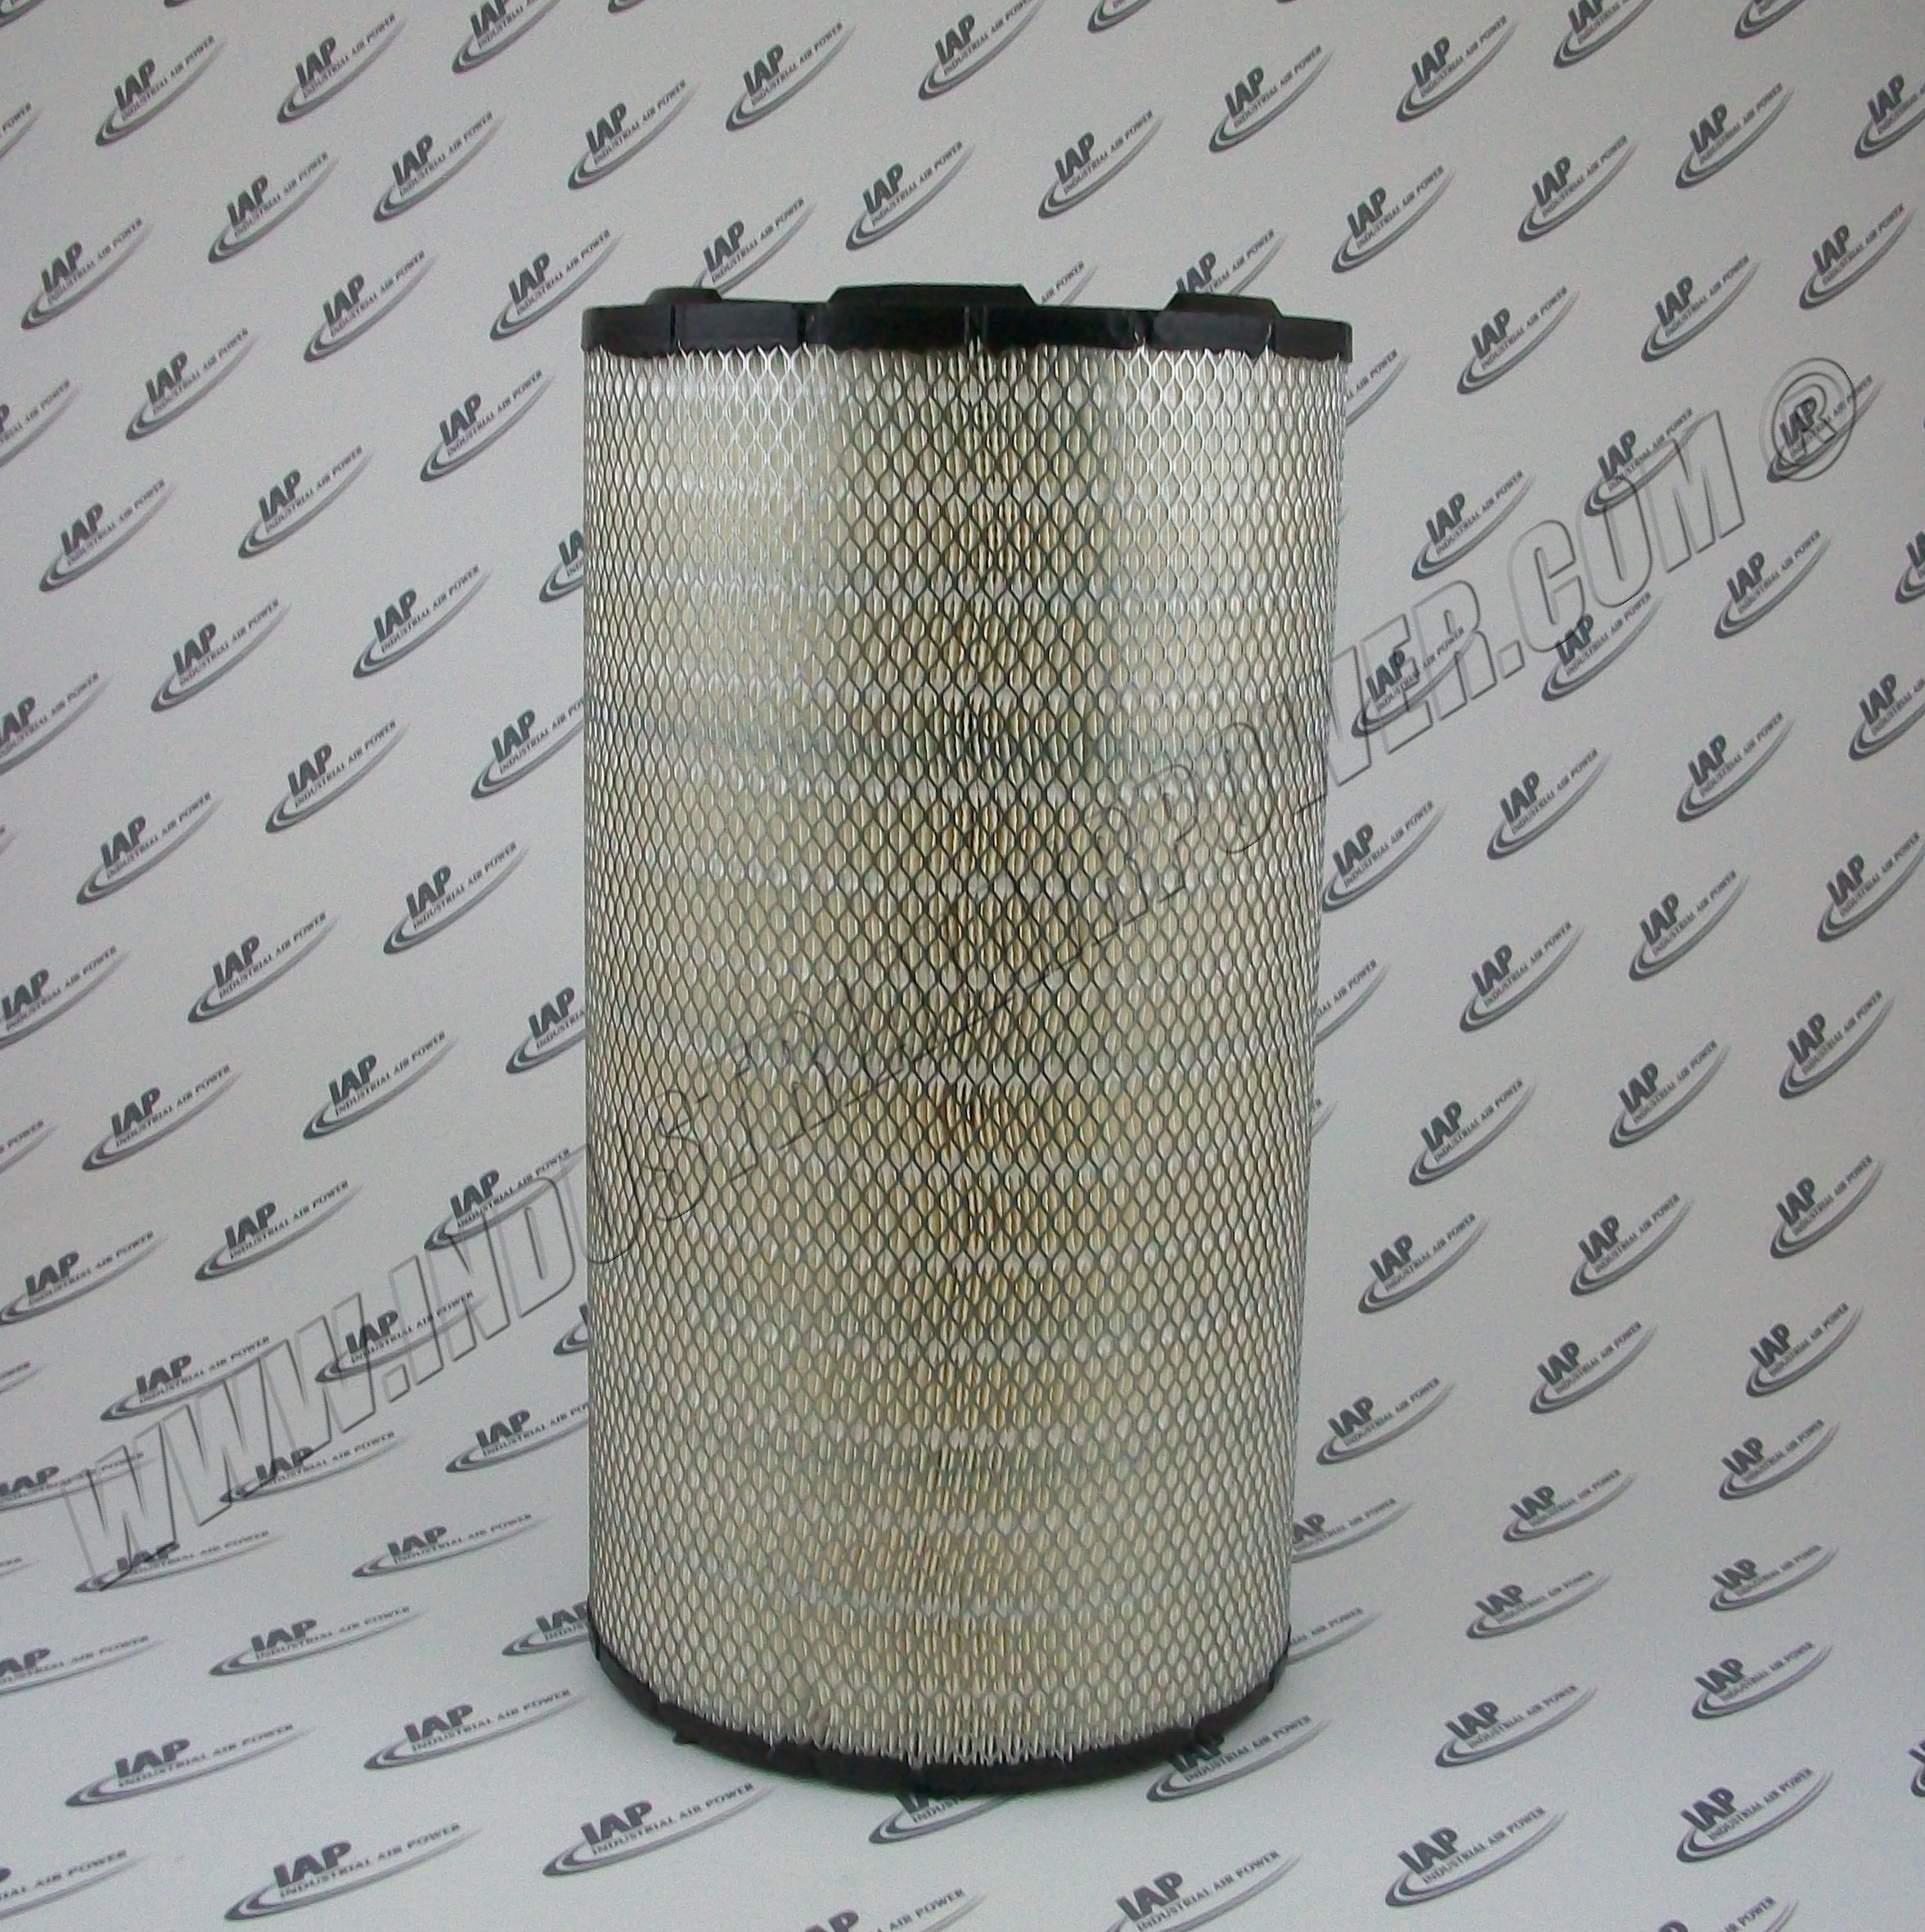 2118348 Air Filter Element Designed for use with Gardner Denver Compressors by Industrial Air Power